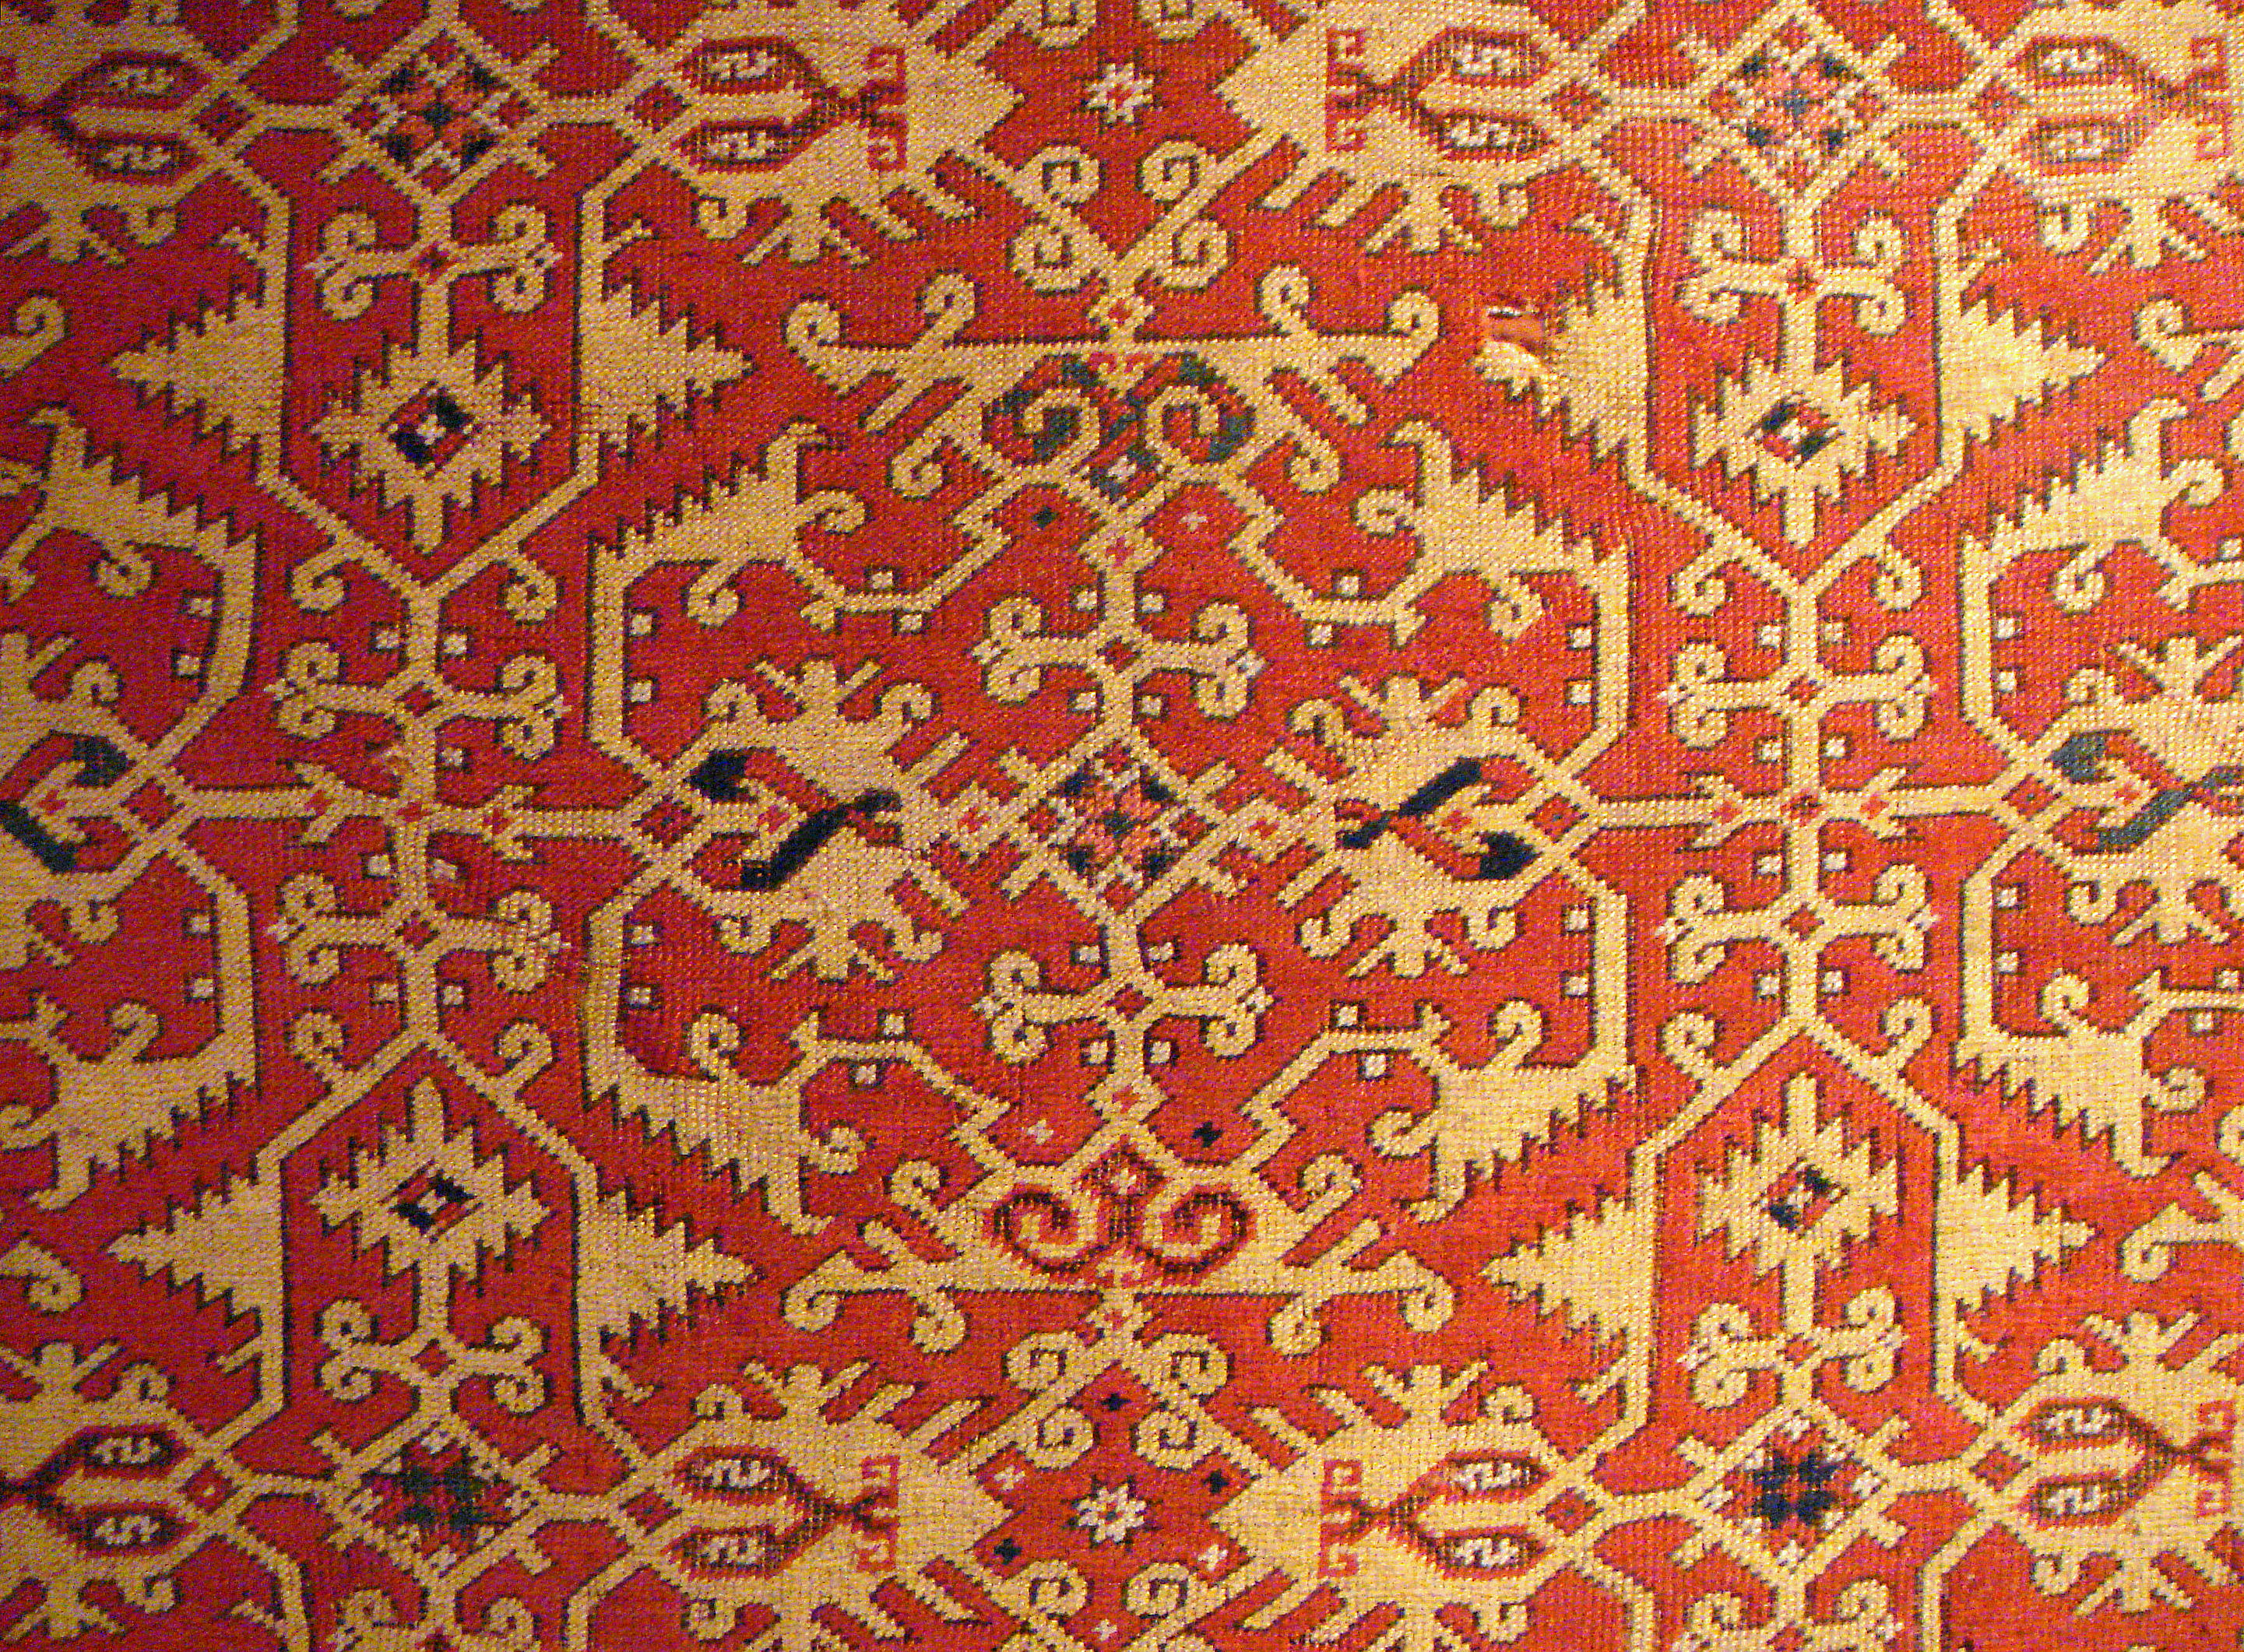 FileLotto Carpet Design Usak 16th Century